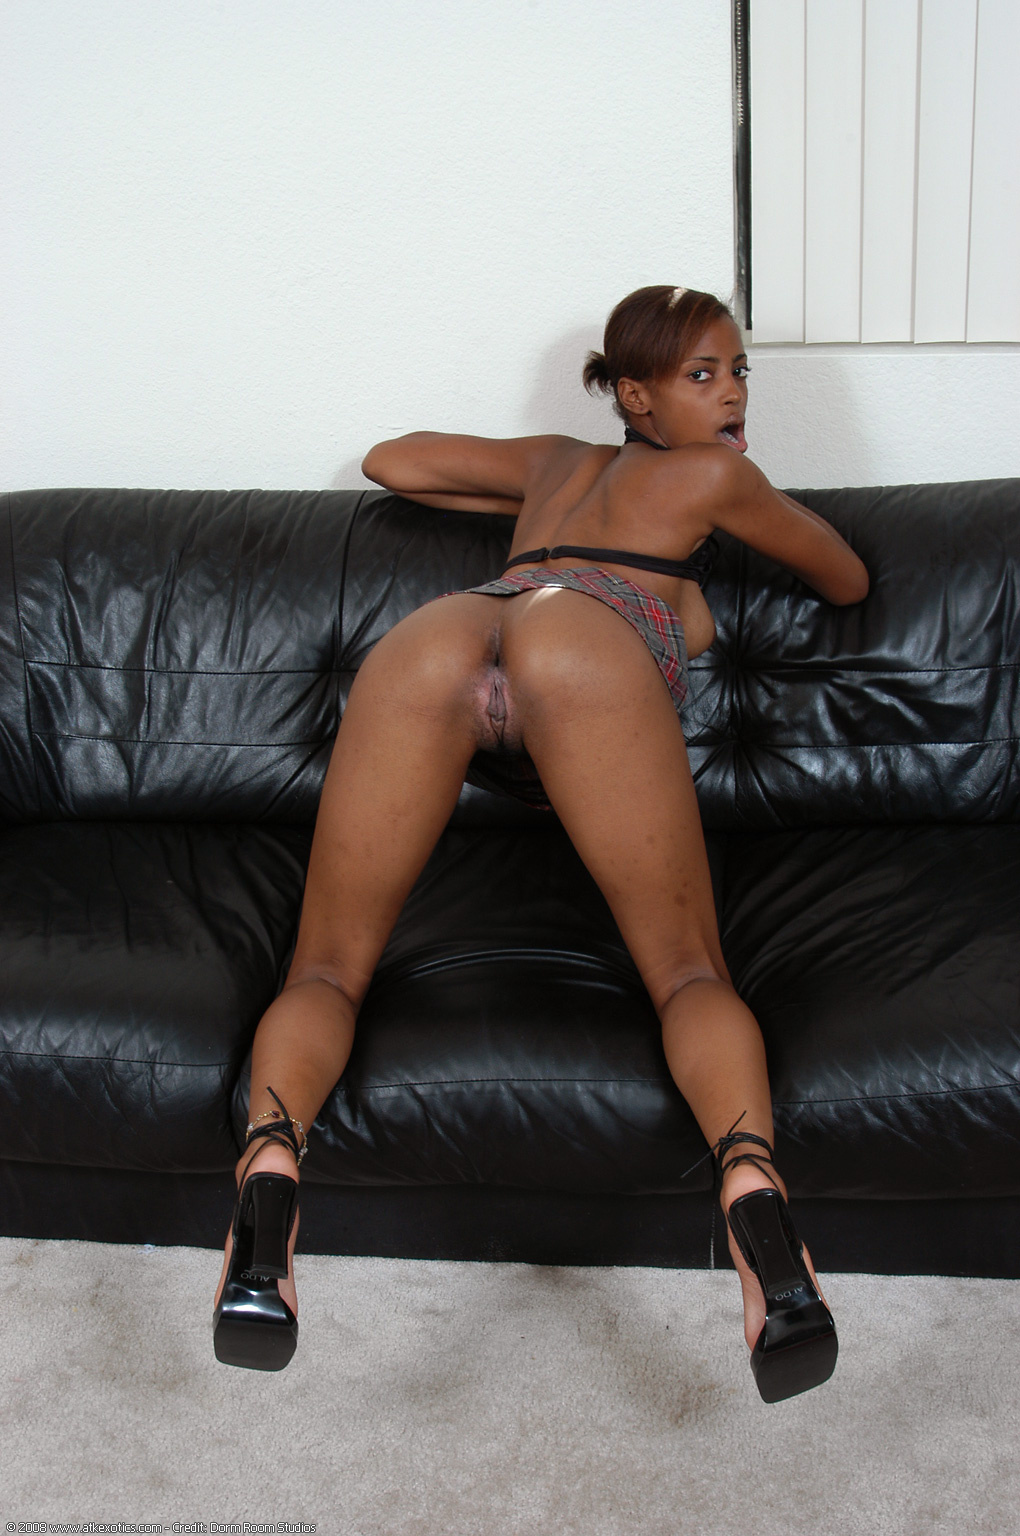 Asian mix with black women naked